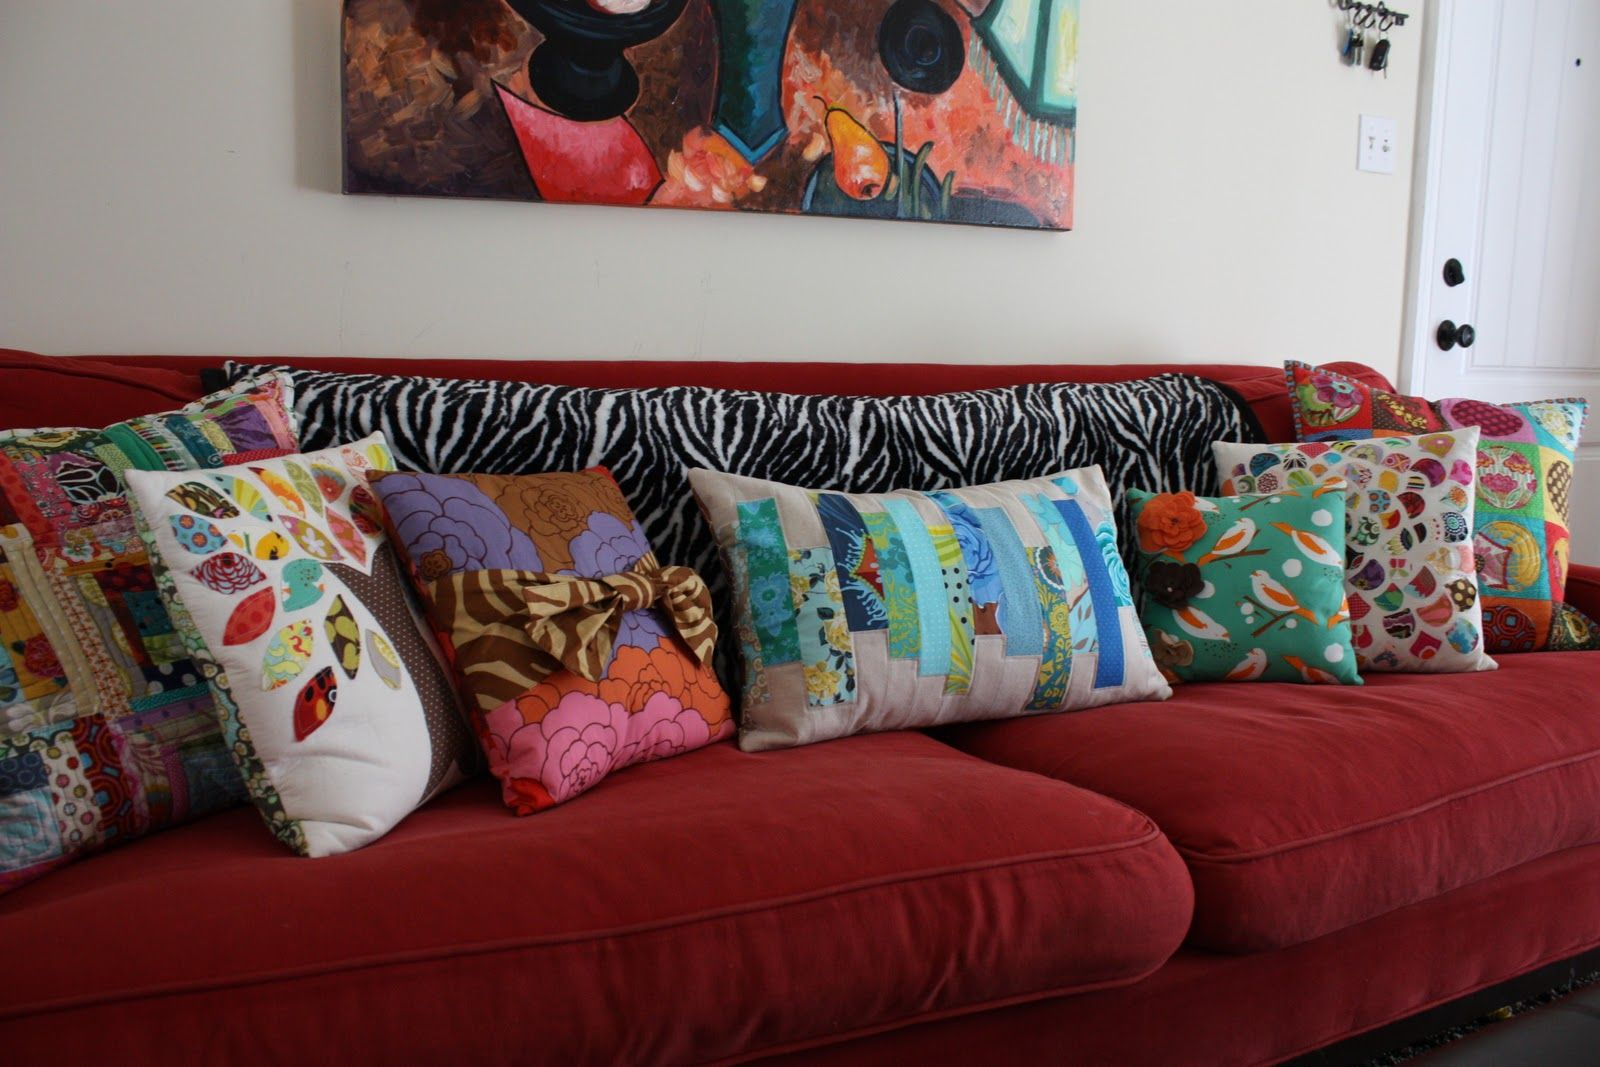 Snazzy Decorative Pillows For Couch Inspiring Your Comfortable Ideas Lovable Throw In Chic Print Bring The Colors Of